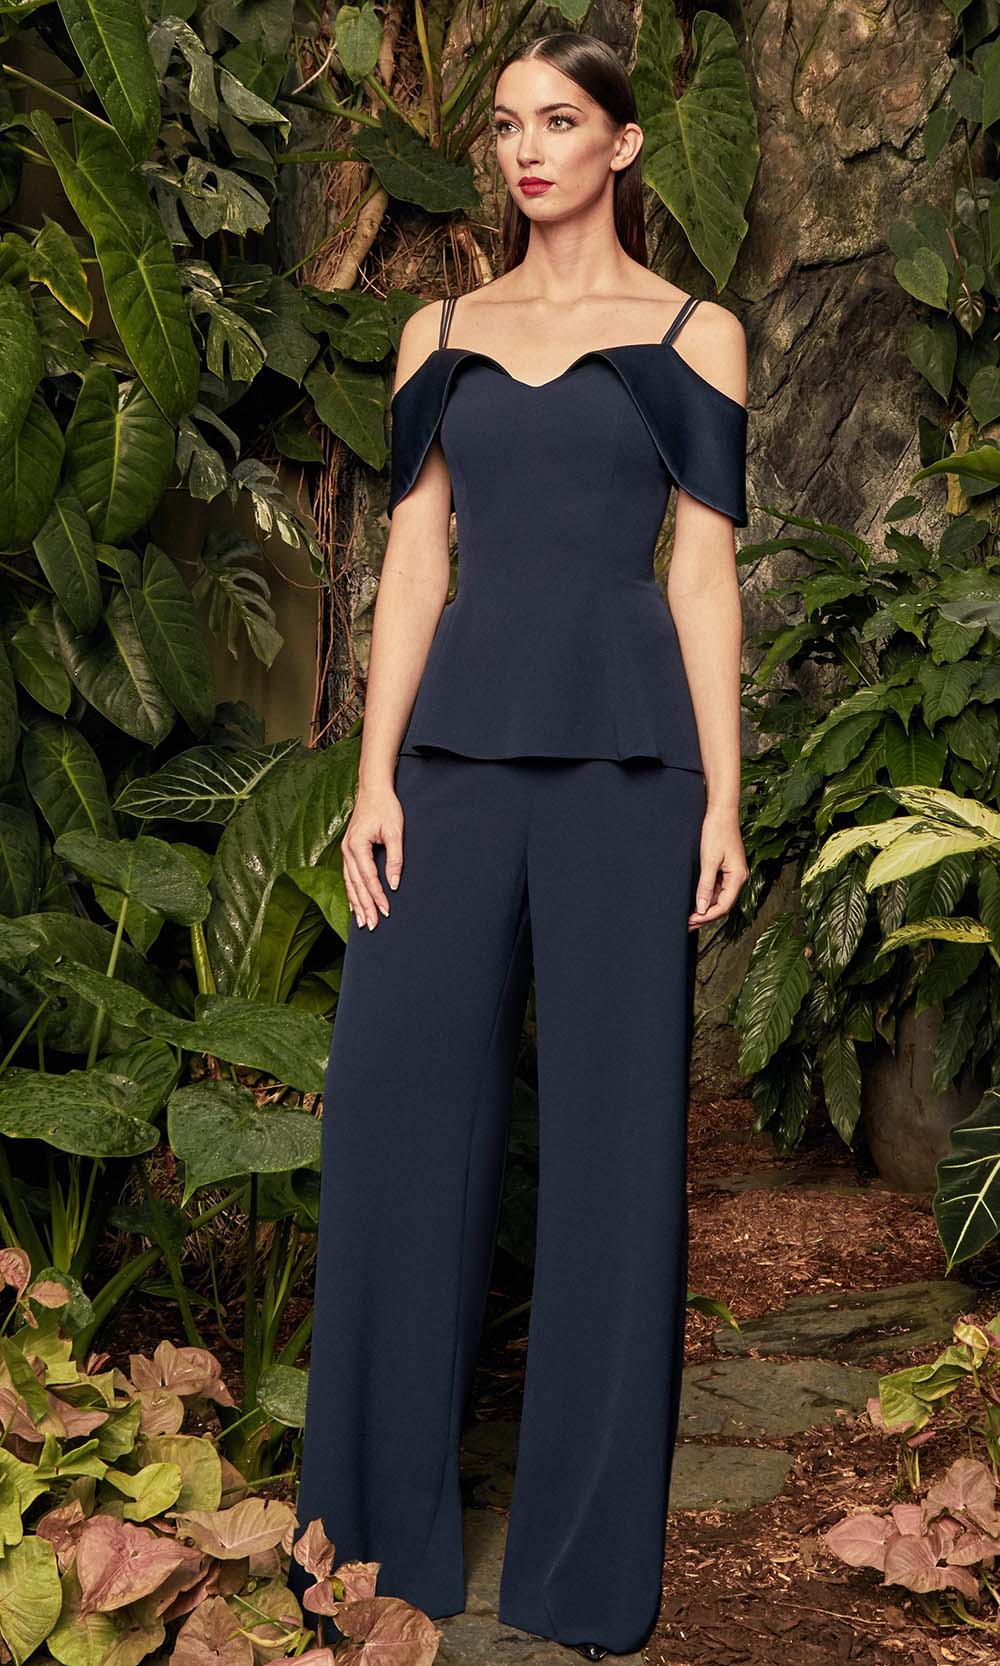 Alexander by Daymor - 990A Satin Cold-shoulder Jumpsuit with Peplum from Alexander By Daymor